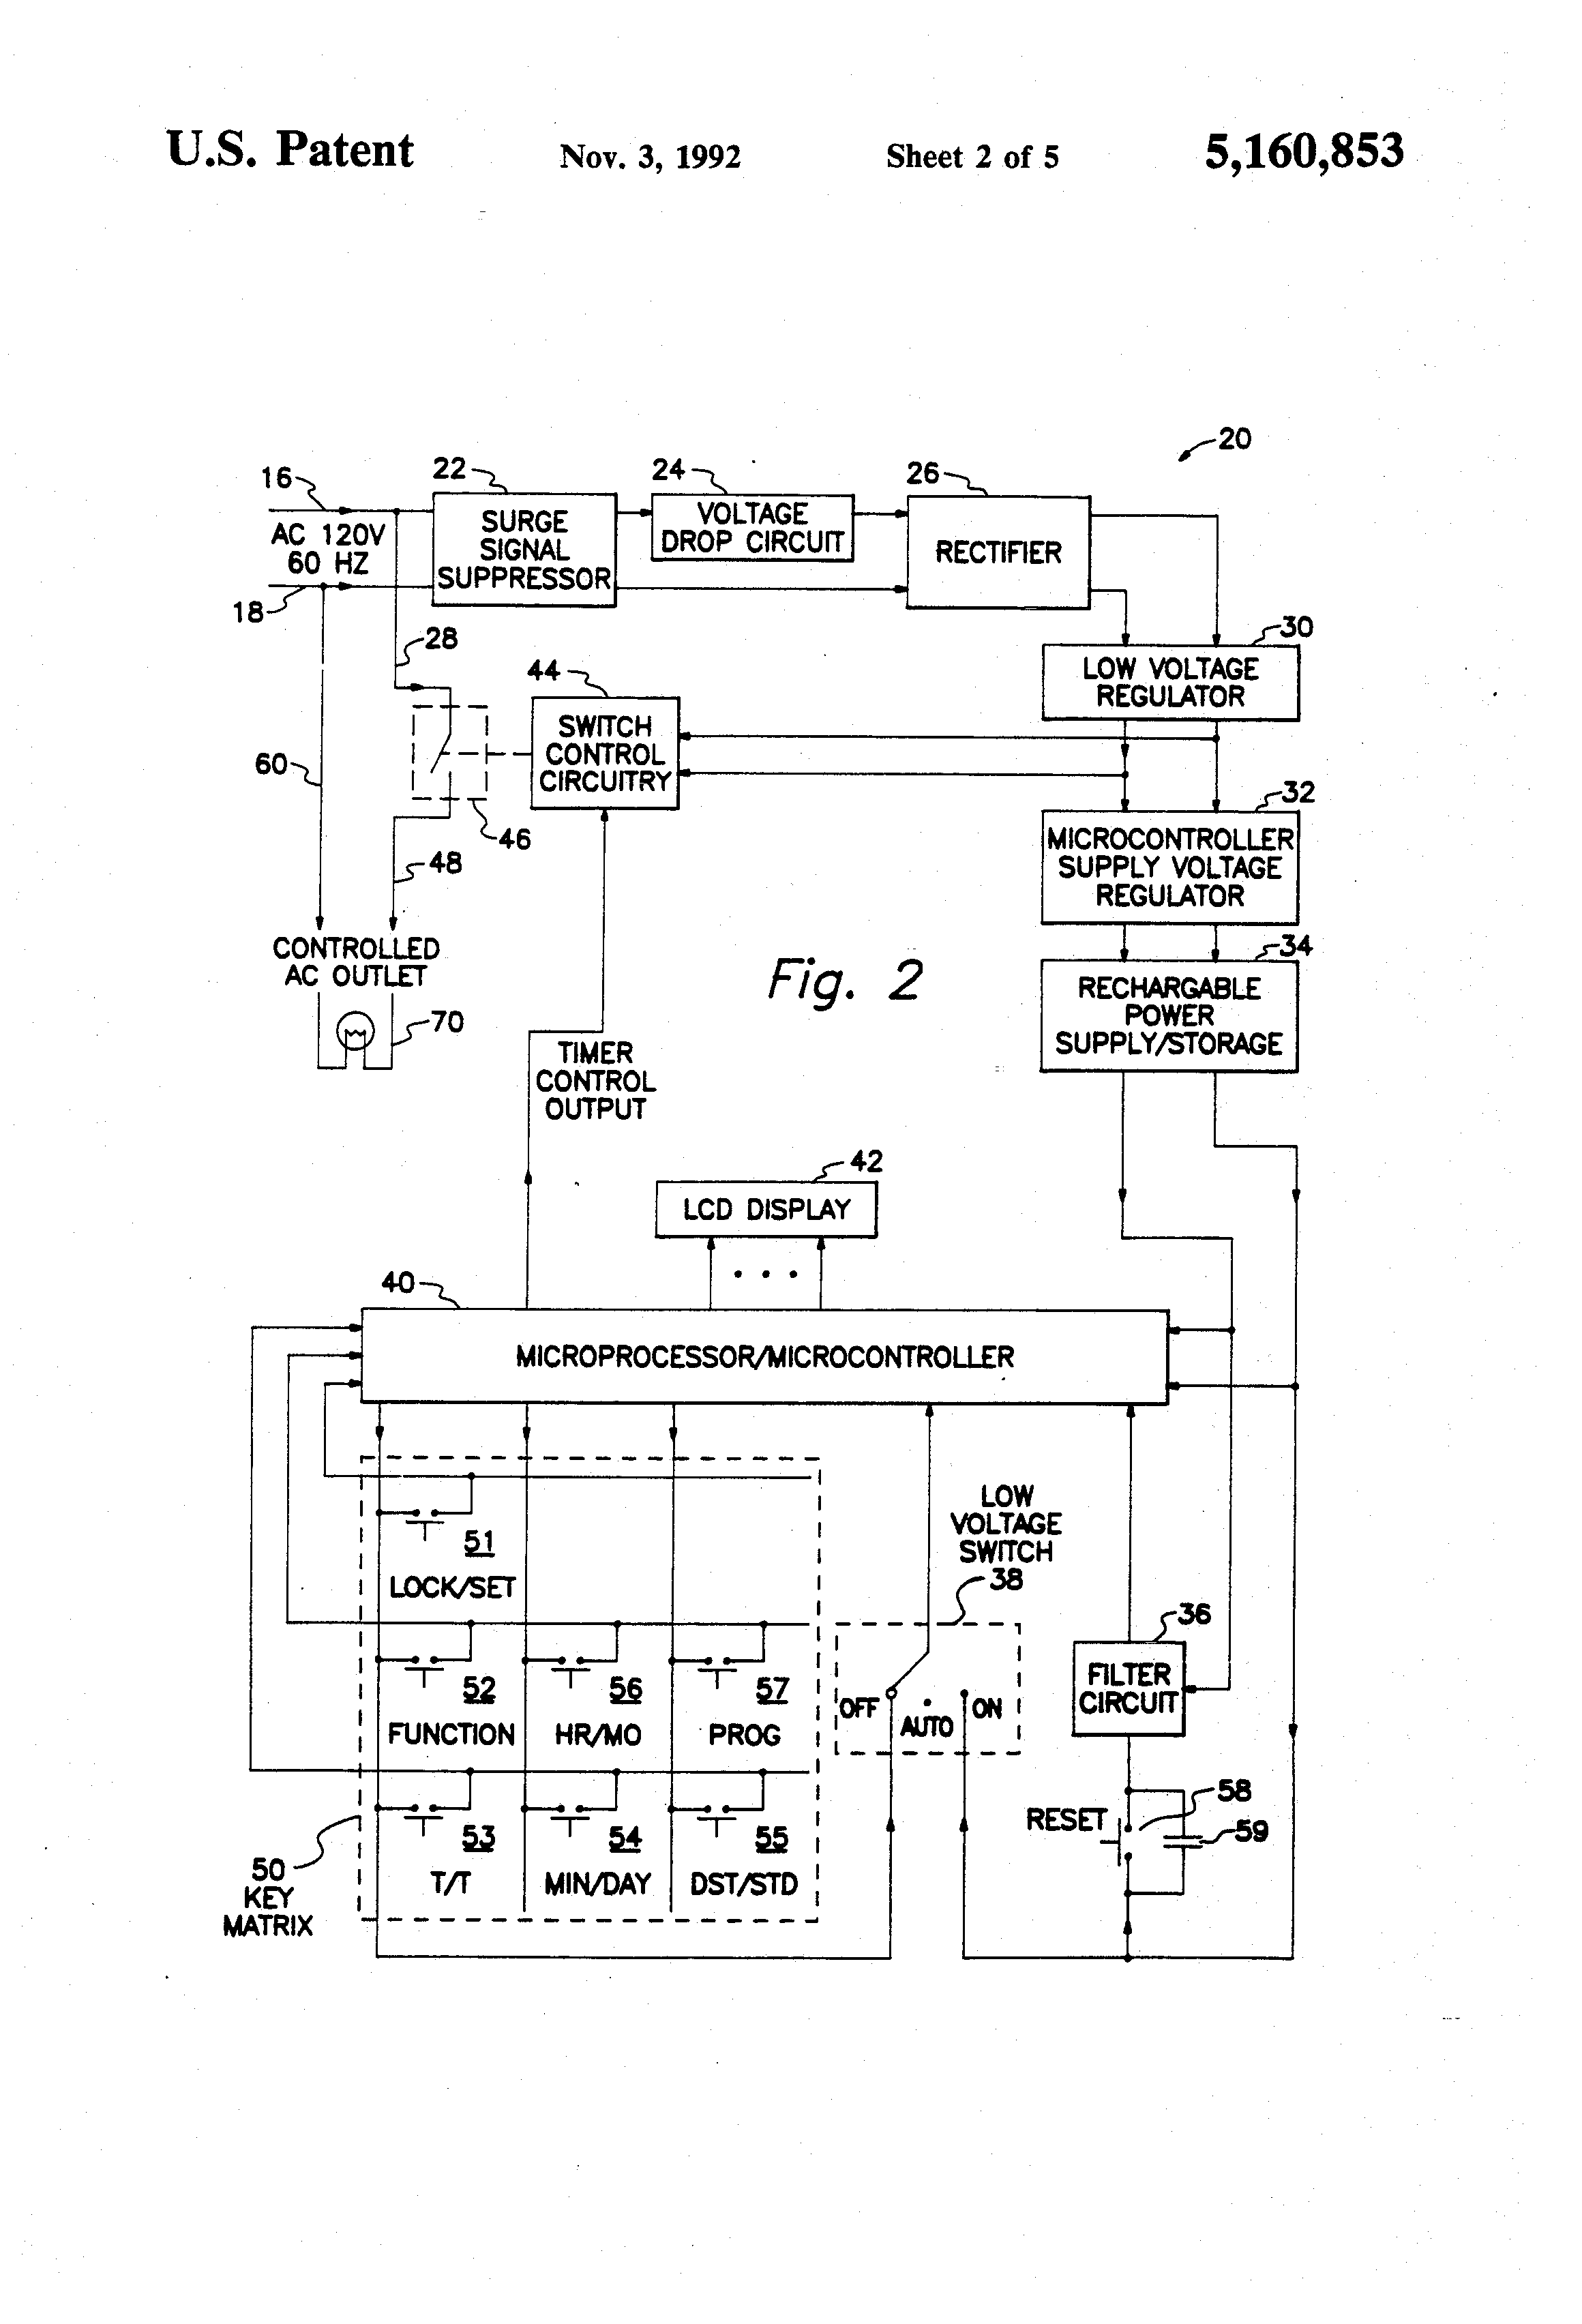 Sangamo Time Clock Wiring Diagram 33 Images Switch Us5160853 2 Patent Electronic Timer With Tracker At